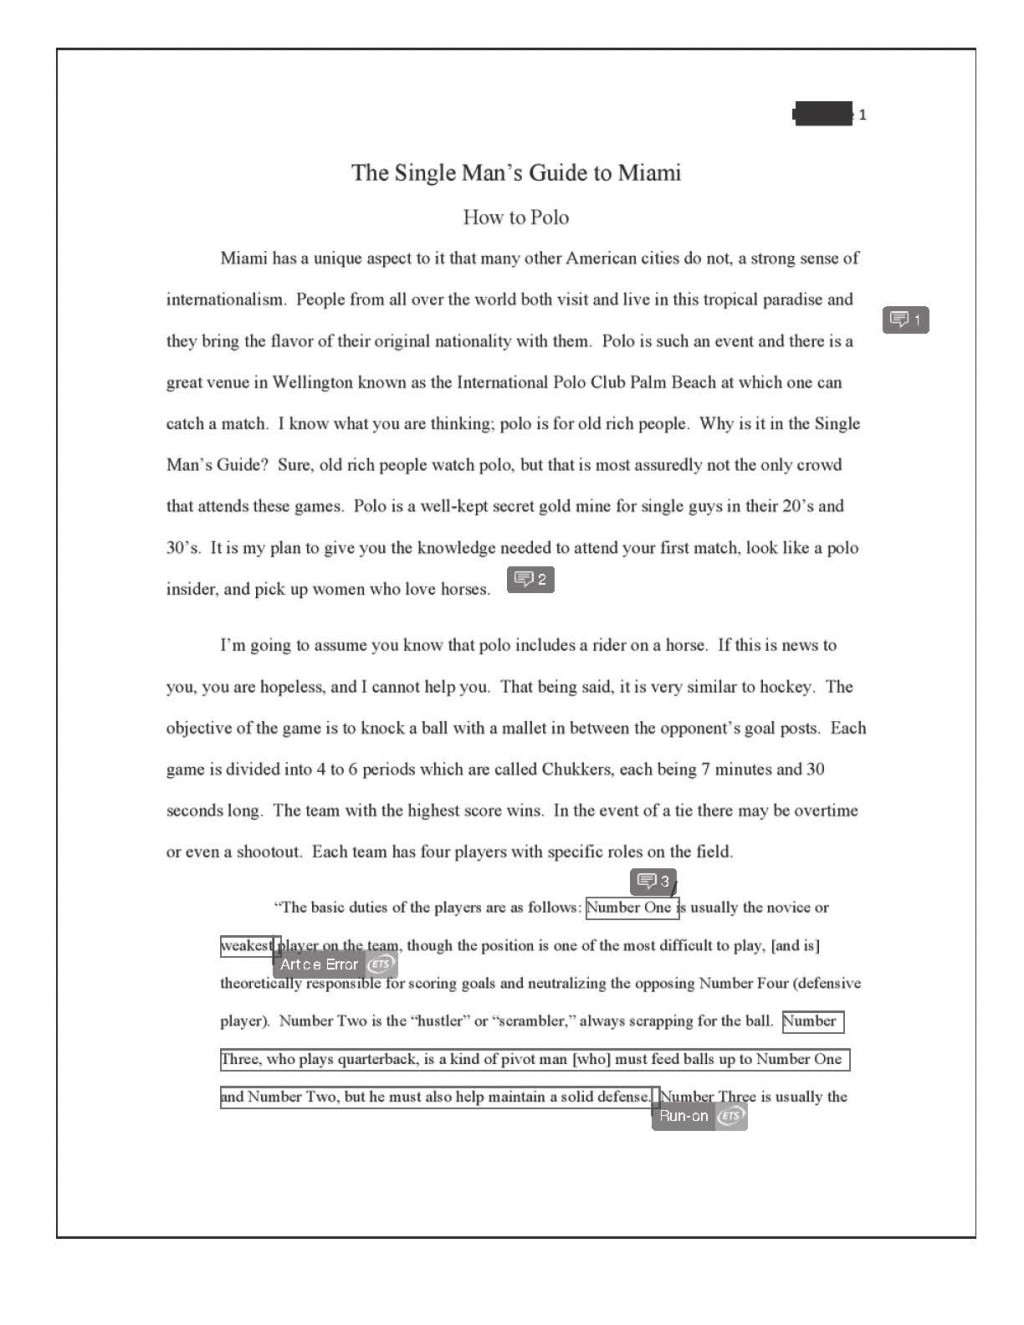 007 Informative Essay Kinds Of Writing Types Essays The Center In Hindi Final How To Polo Redacted P Pdf Task Slideshare Ppt Withs Wikipedia Dreaded Graphic Organizer Prompts Middle School 3rd Grade Large